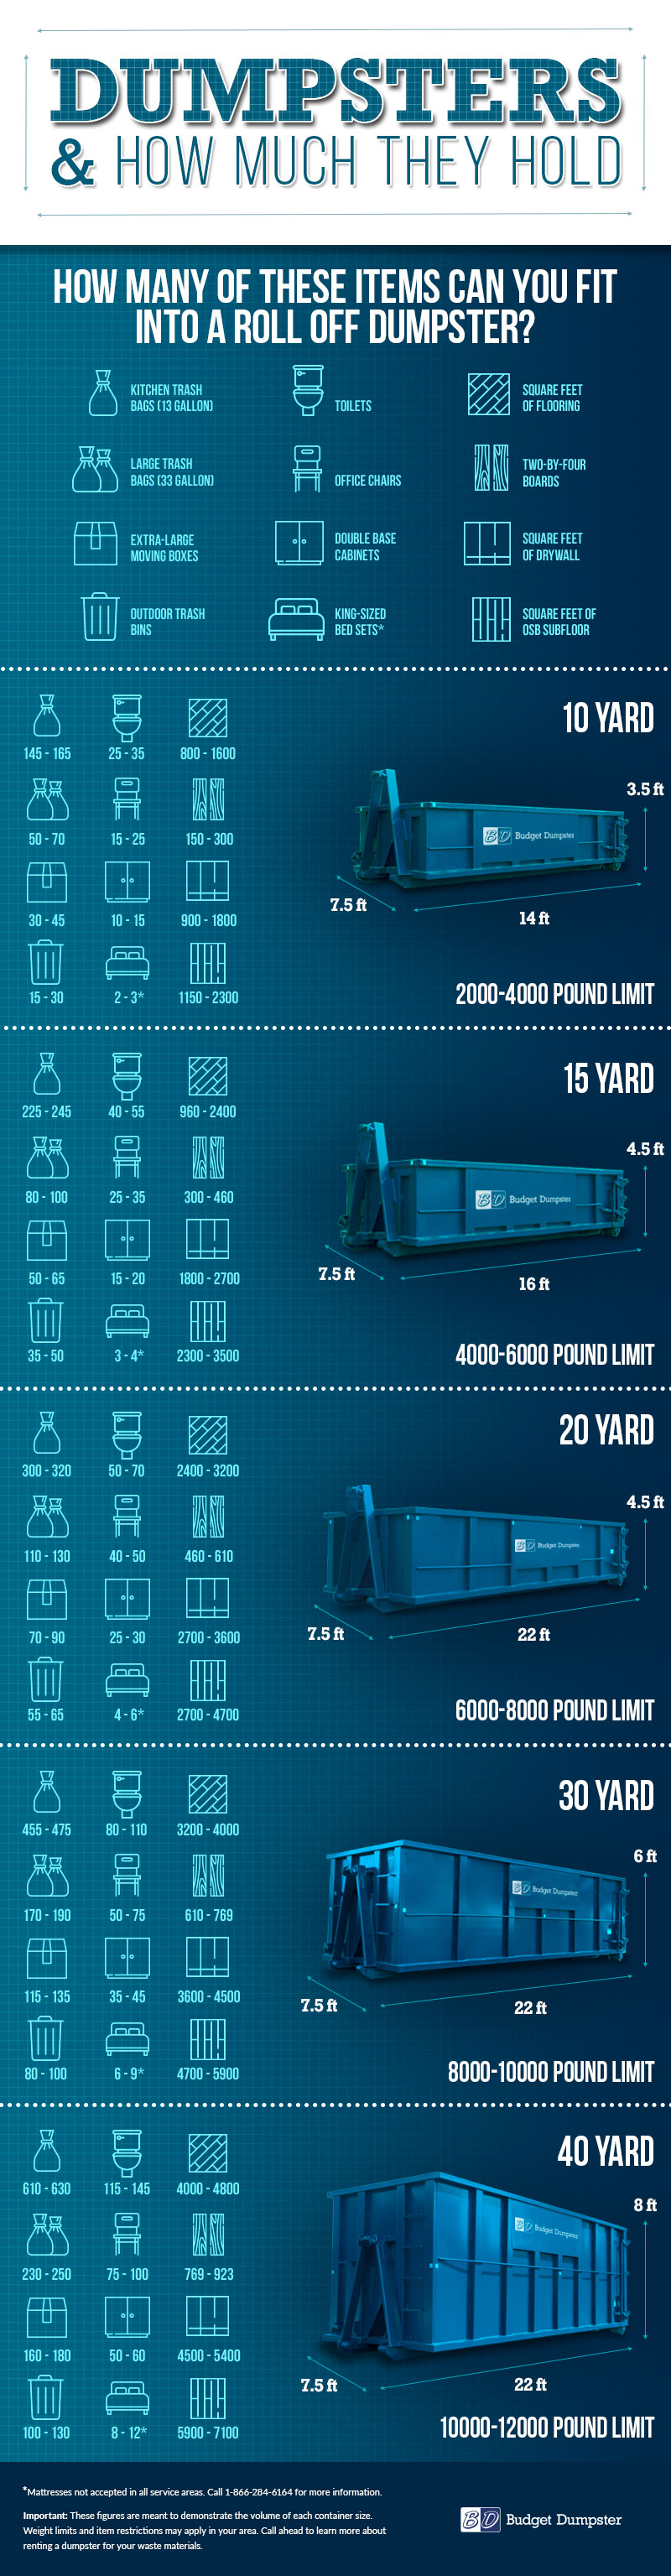 Dumpster Sizes Images for Comparing Container Volumes